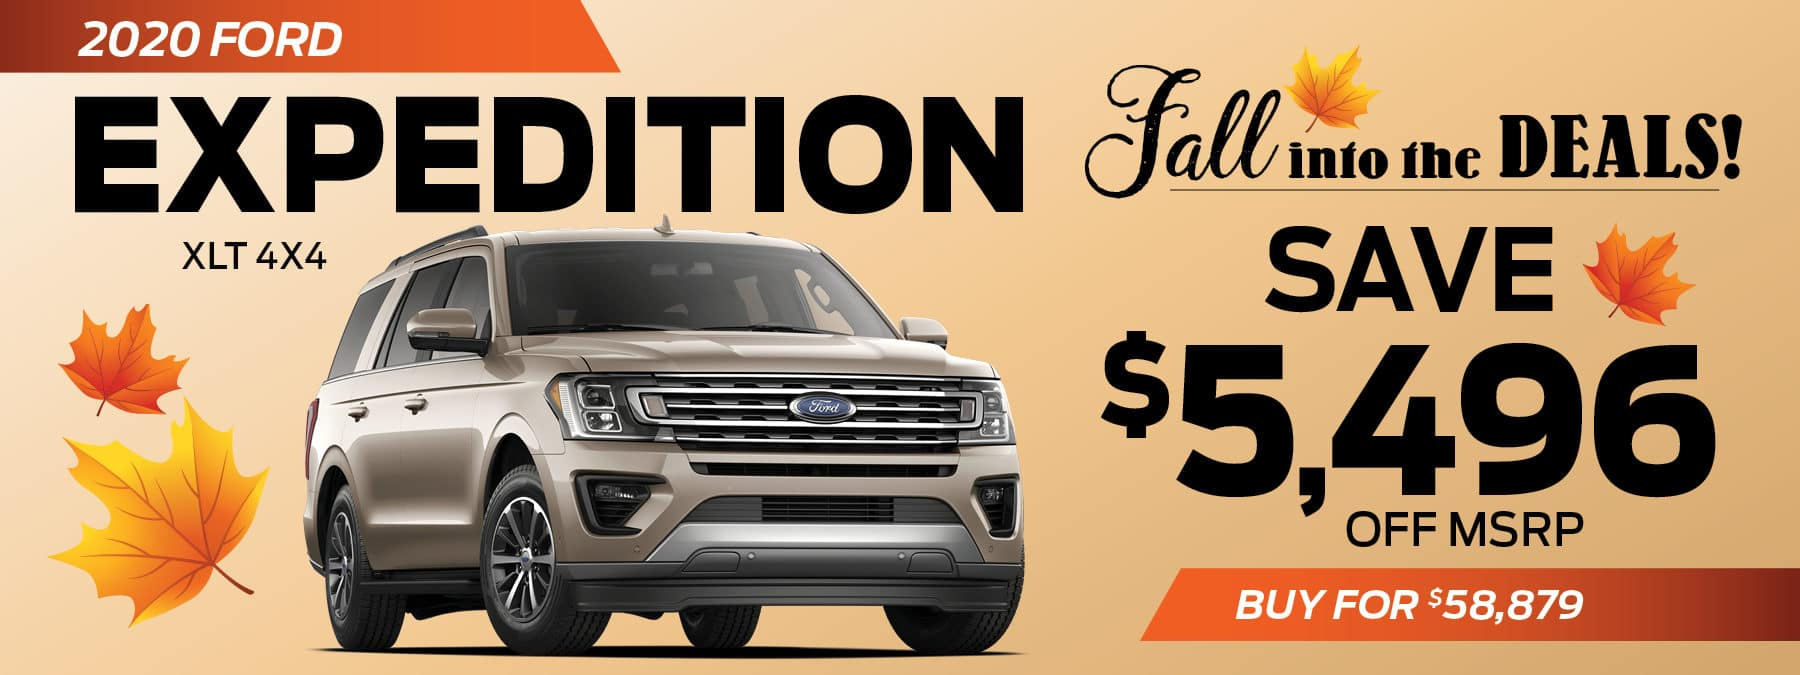 2020 Ford Expedition Save $5496 Off MSRP